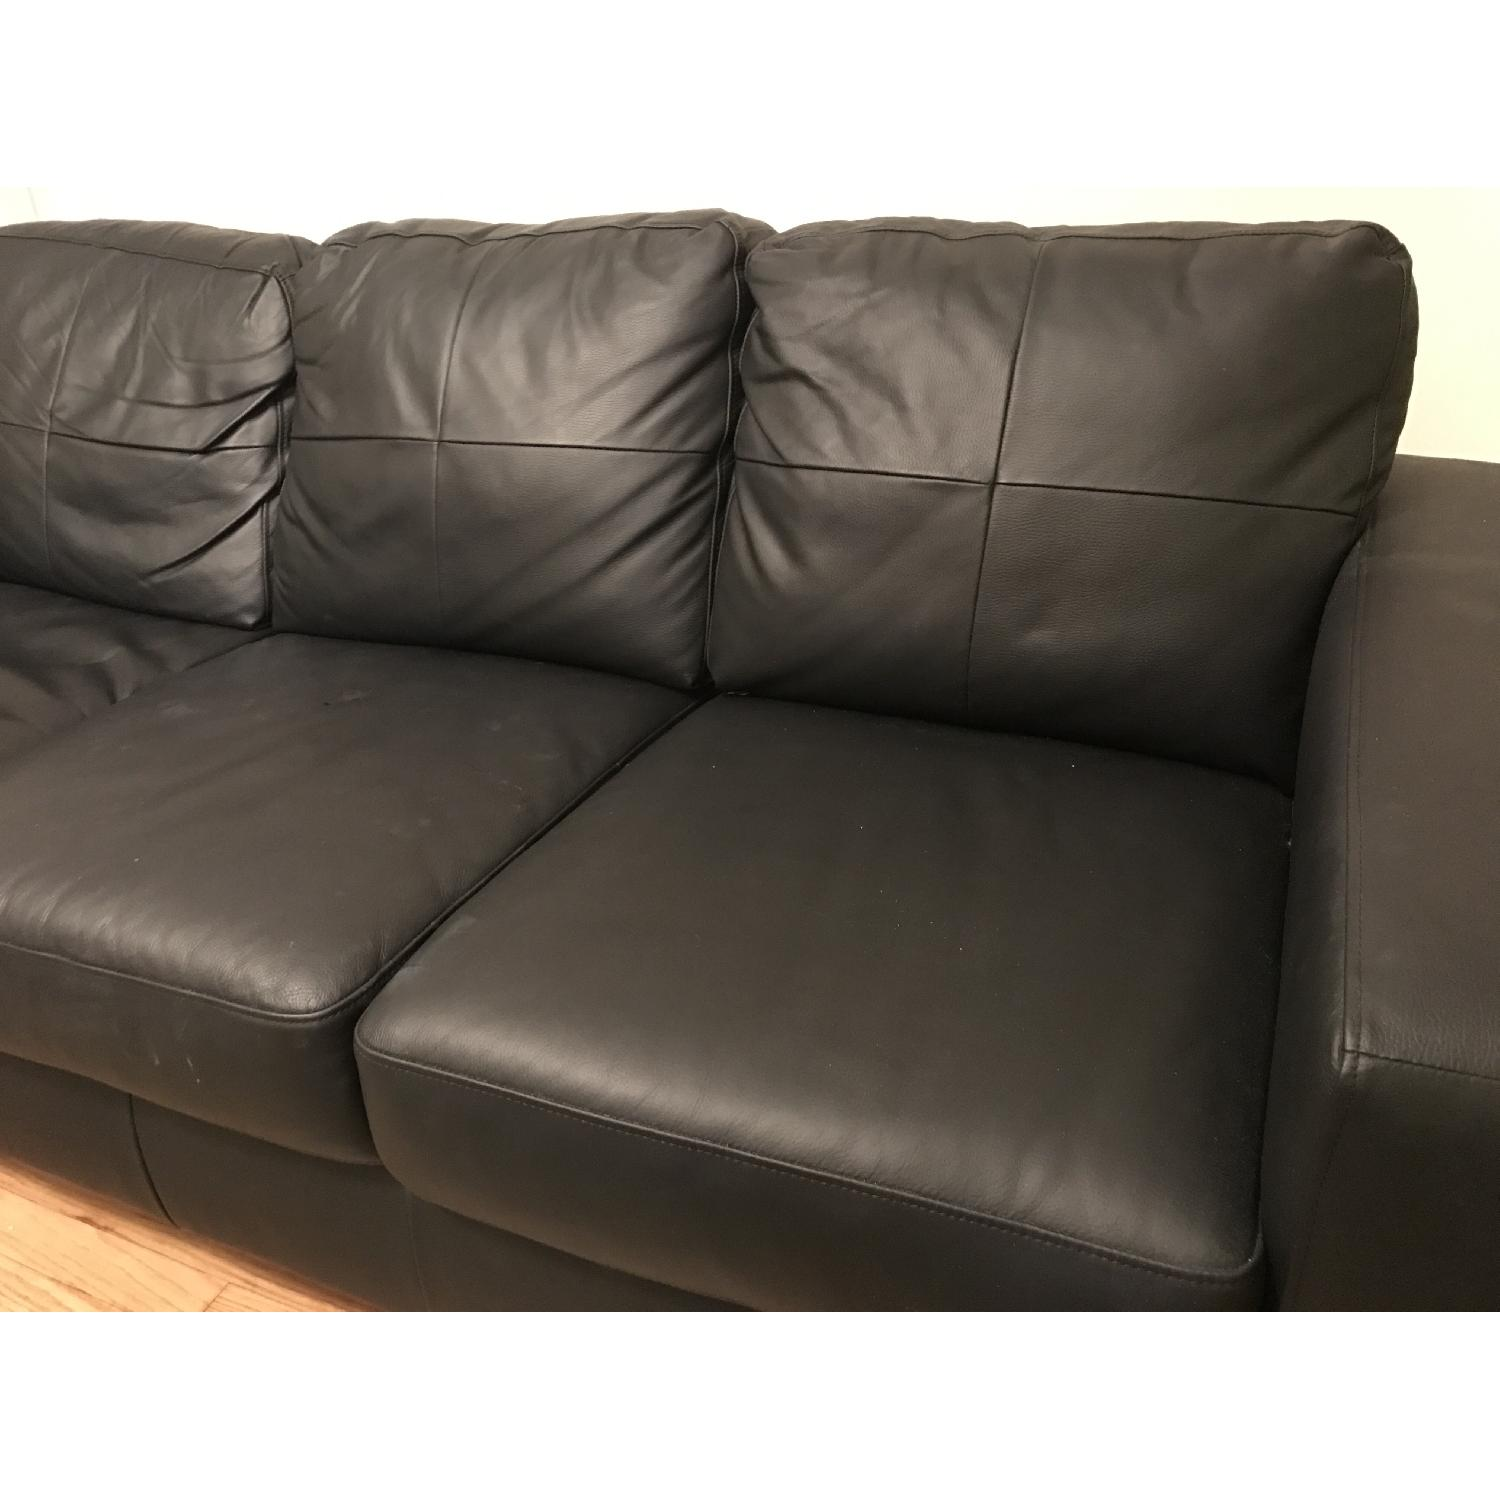 Ikea Skogaby Black Leather Couch - image-2